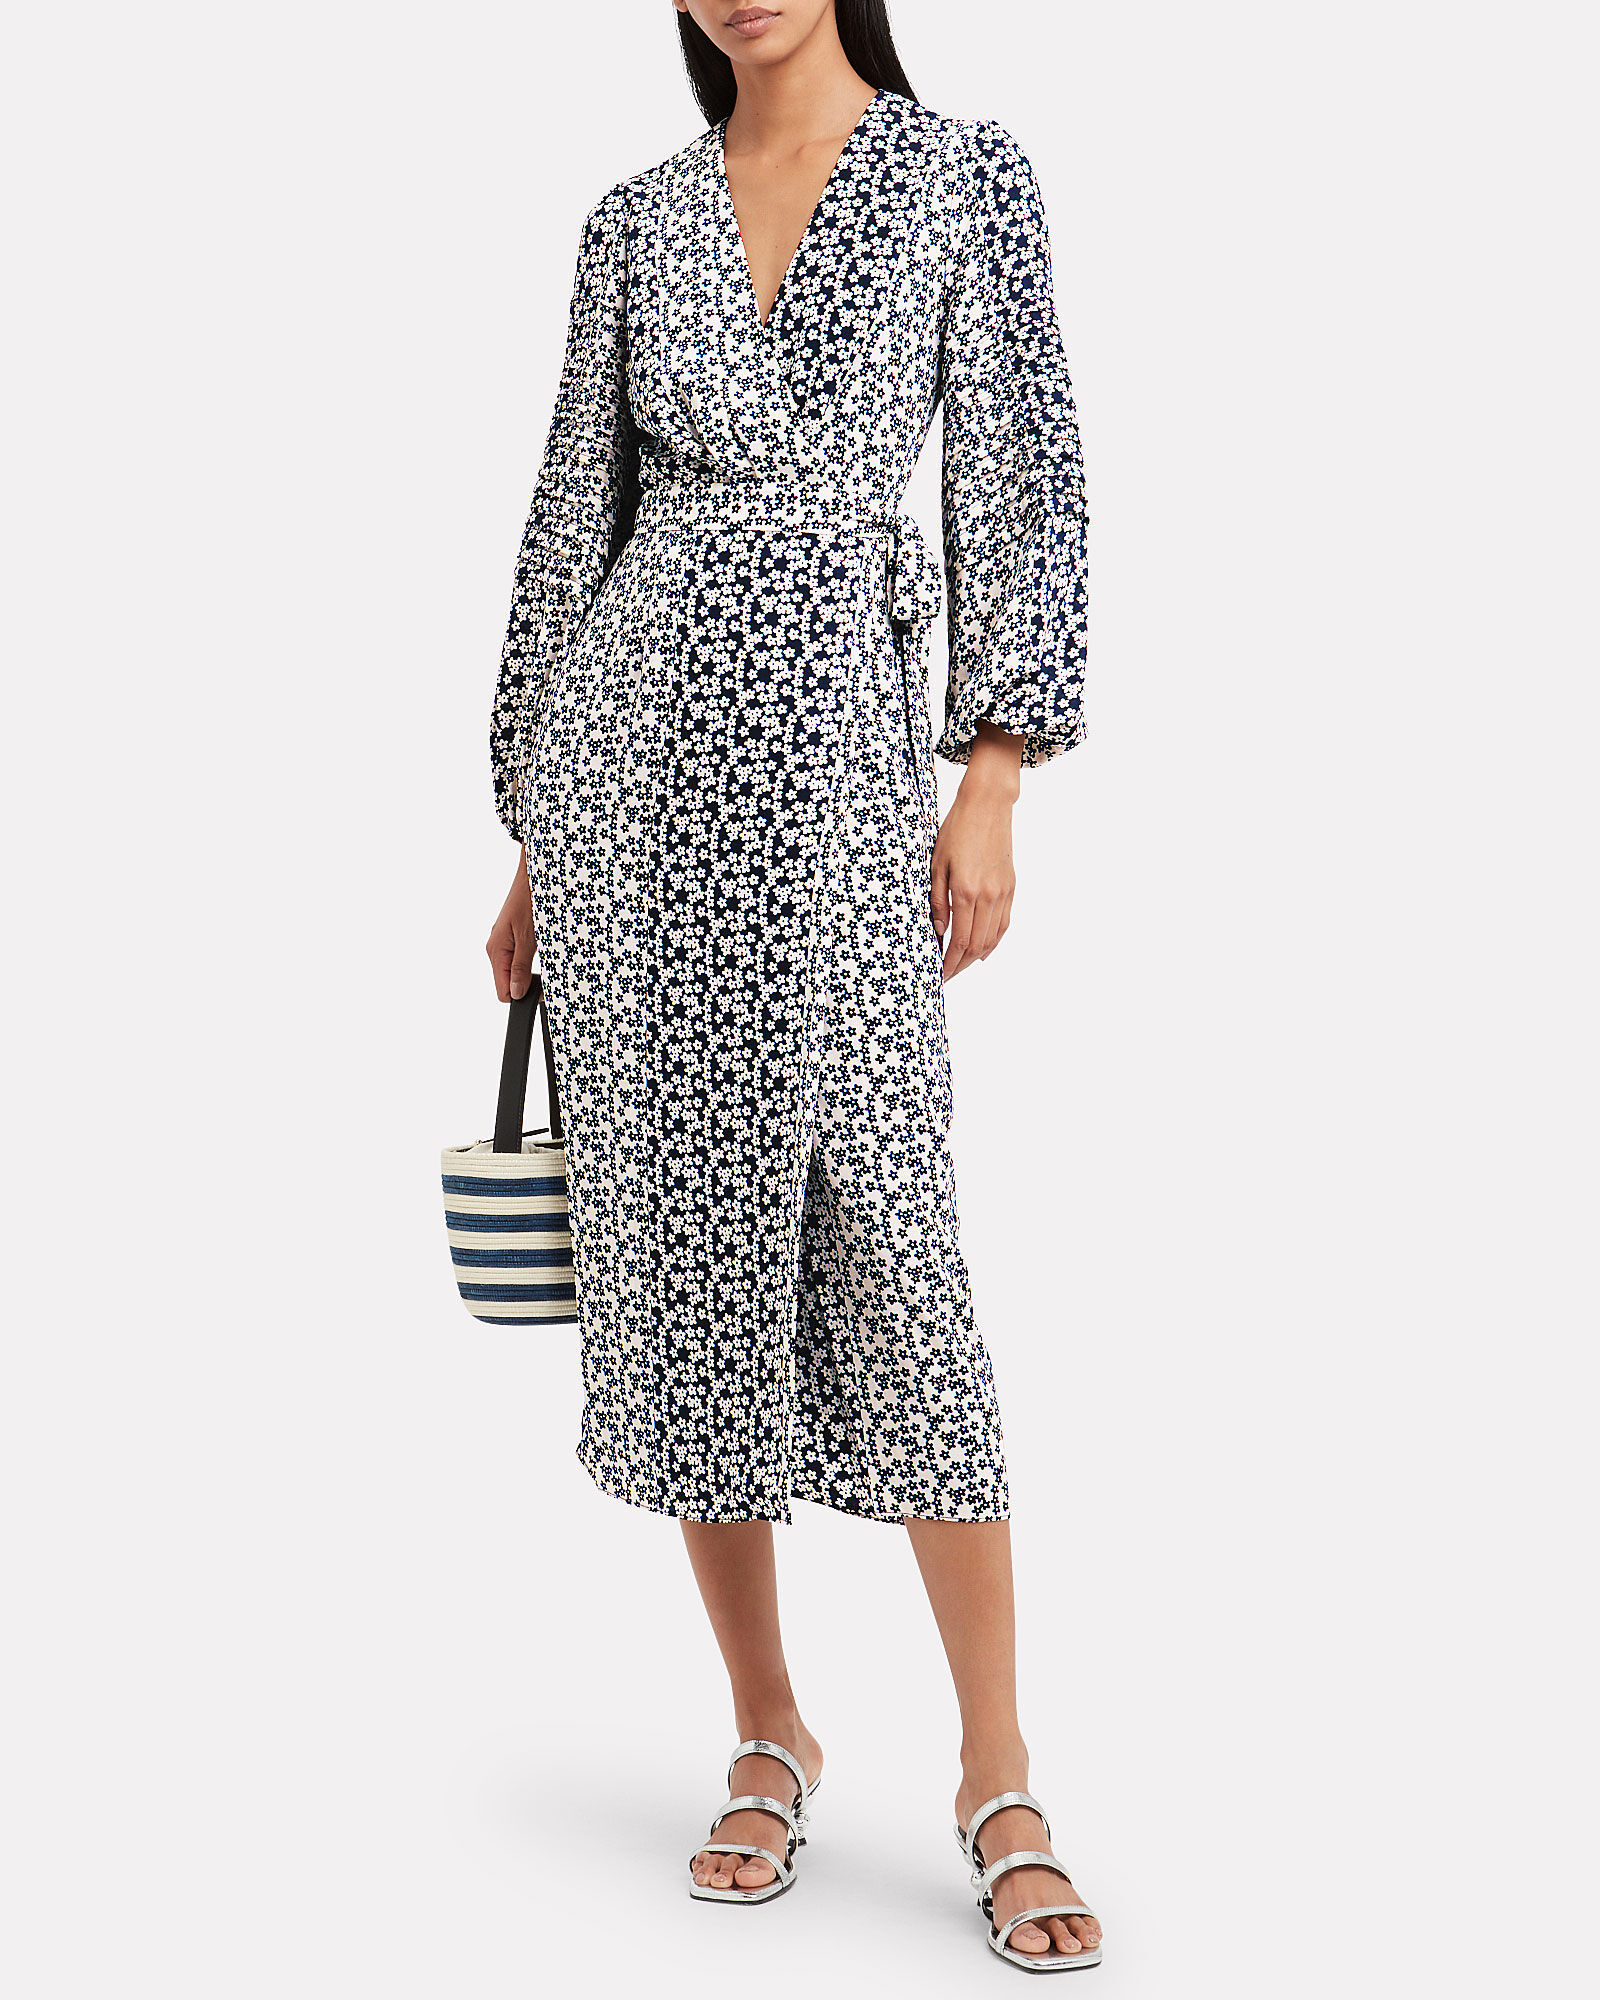 Remember Me Floral Wrap Dress, MULTI, hi-res